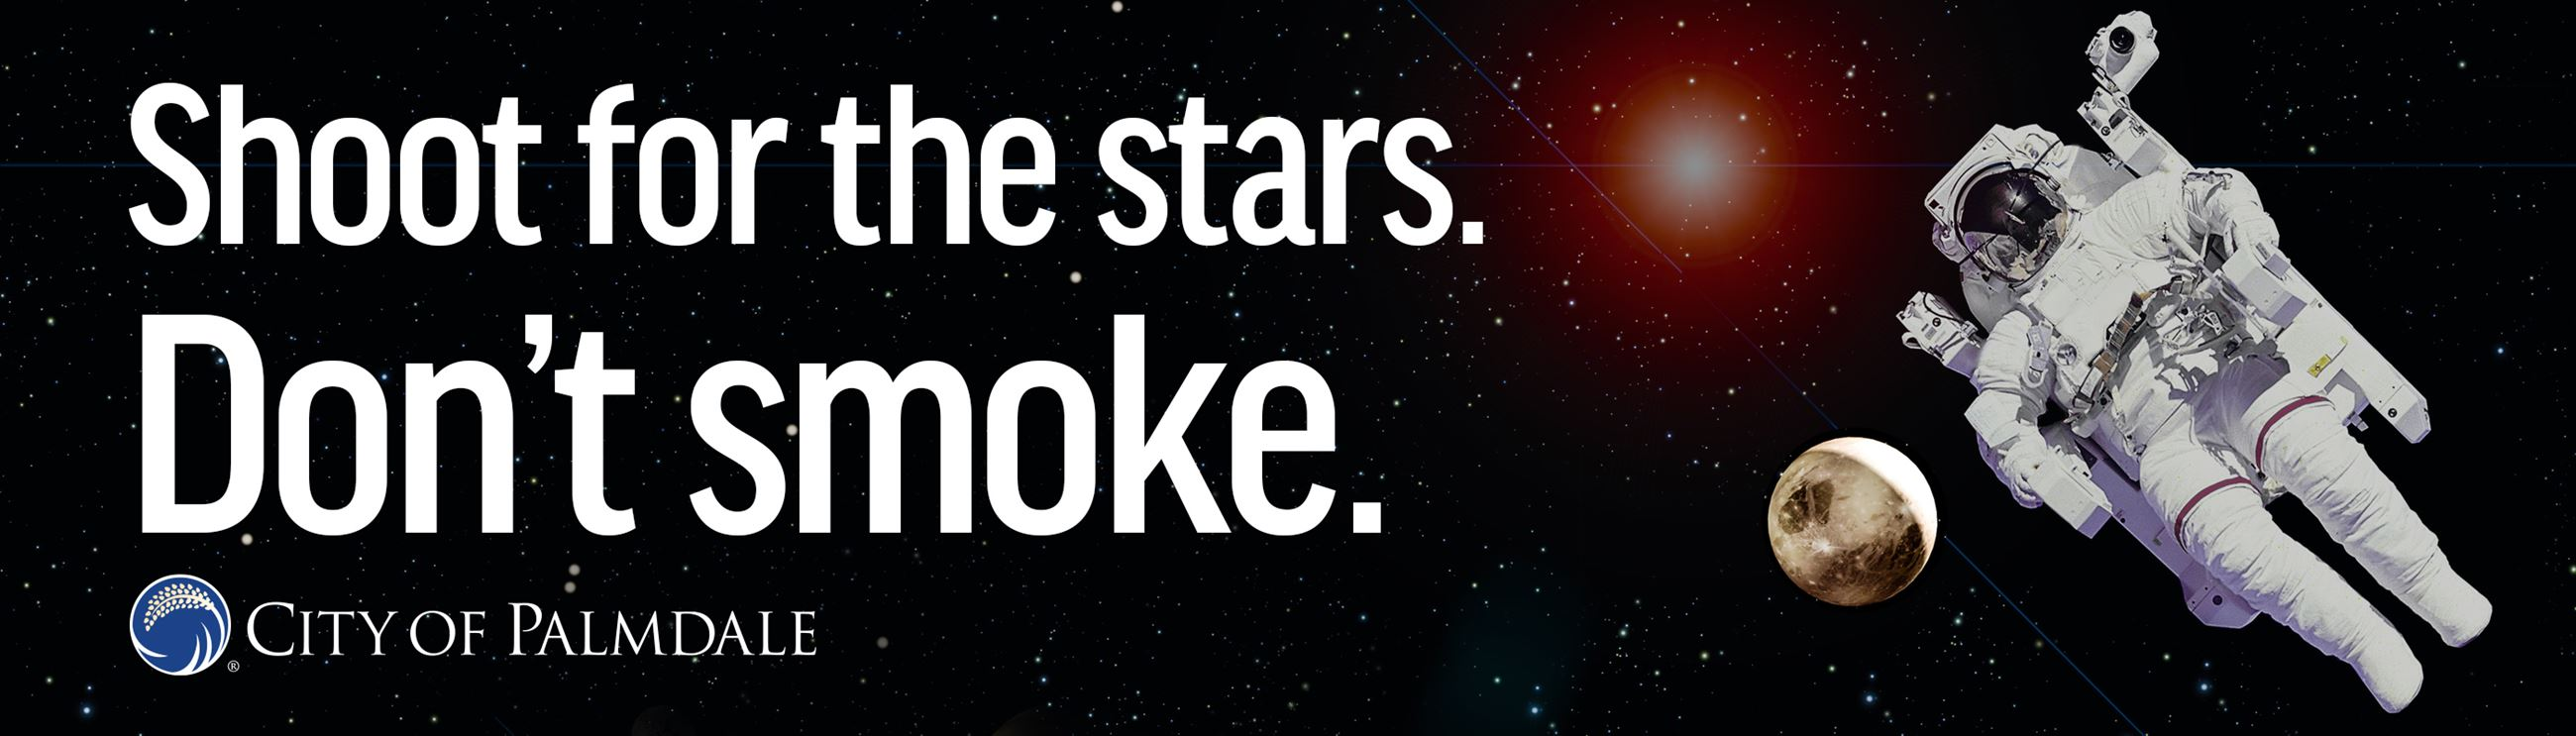 Astronaut anti-tobacco Billboard shoot for the stars. don't smoke